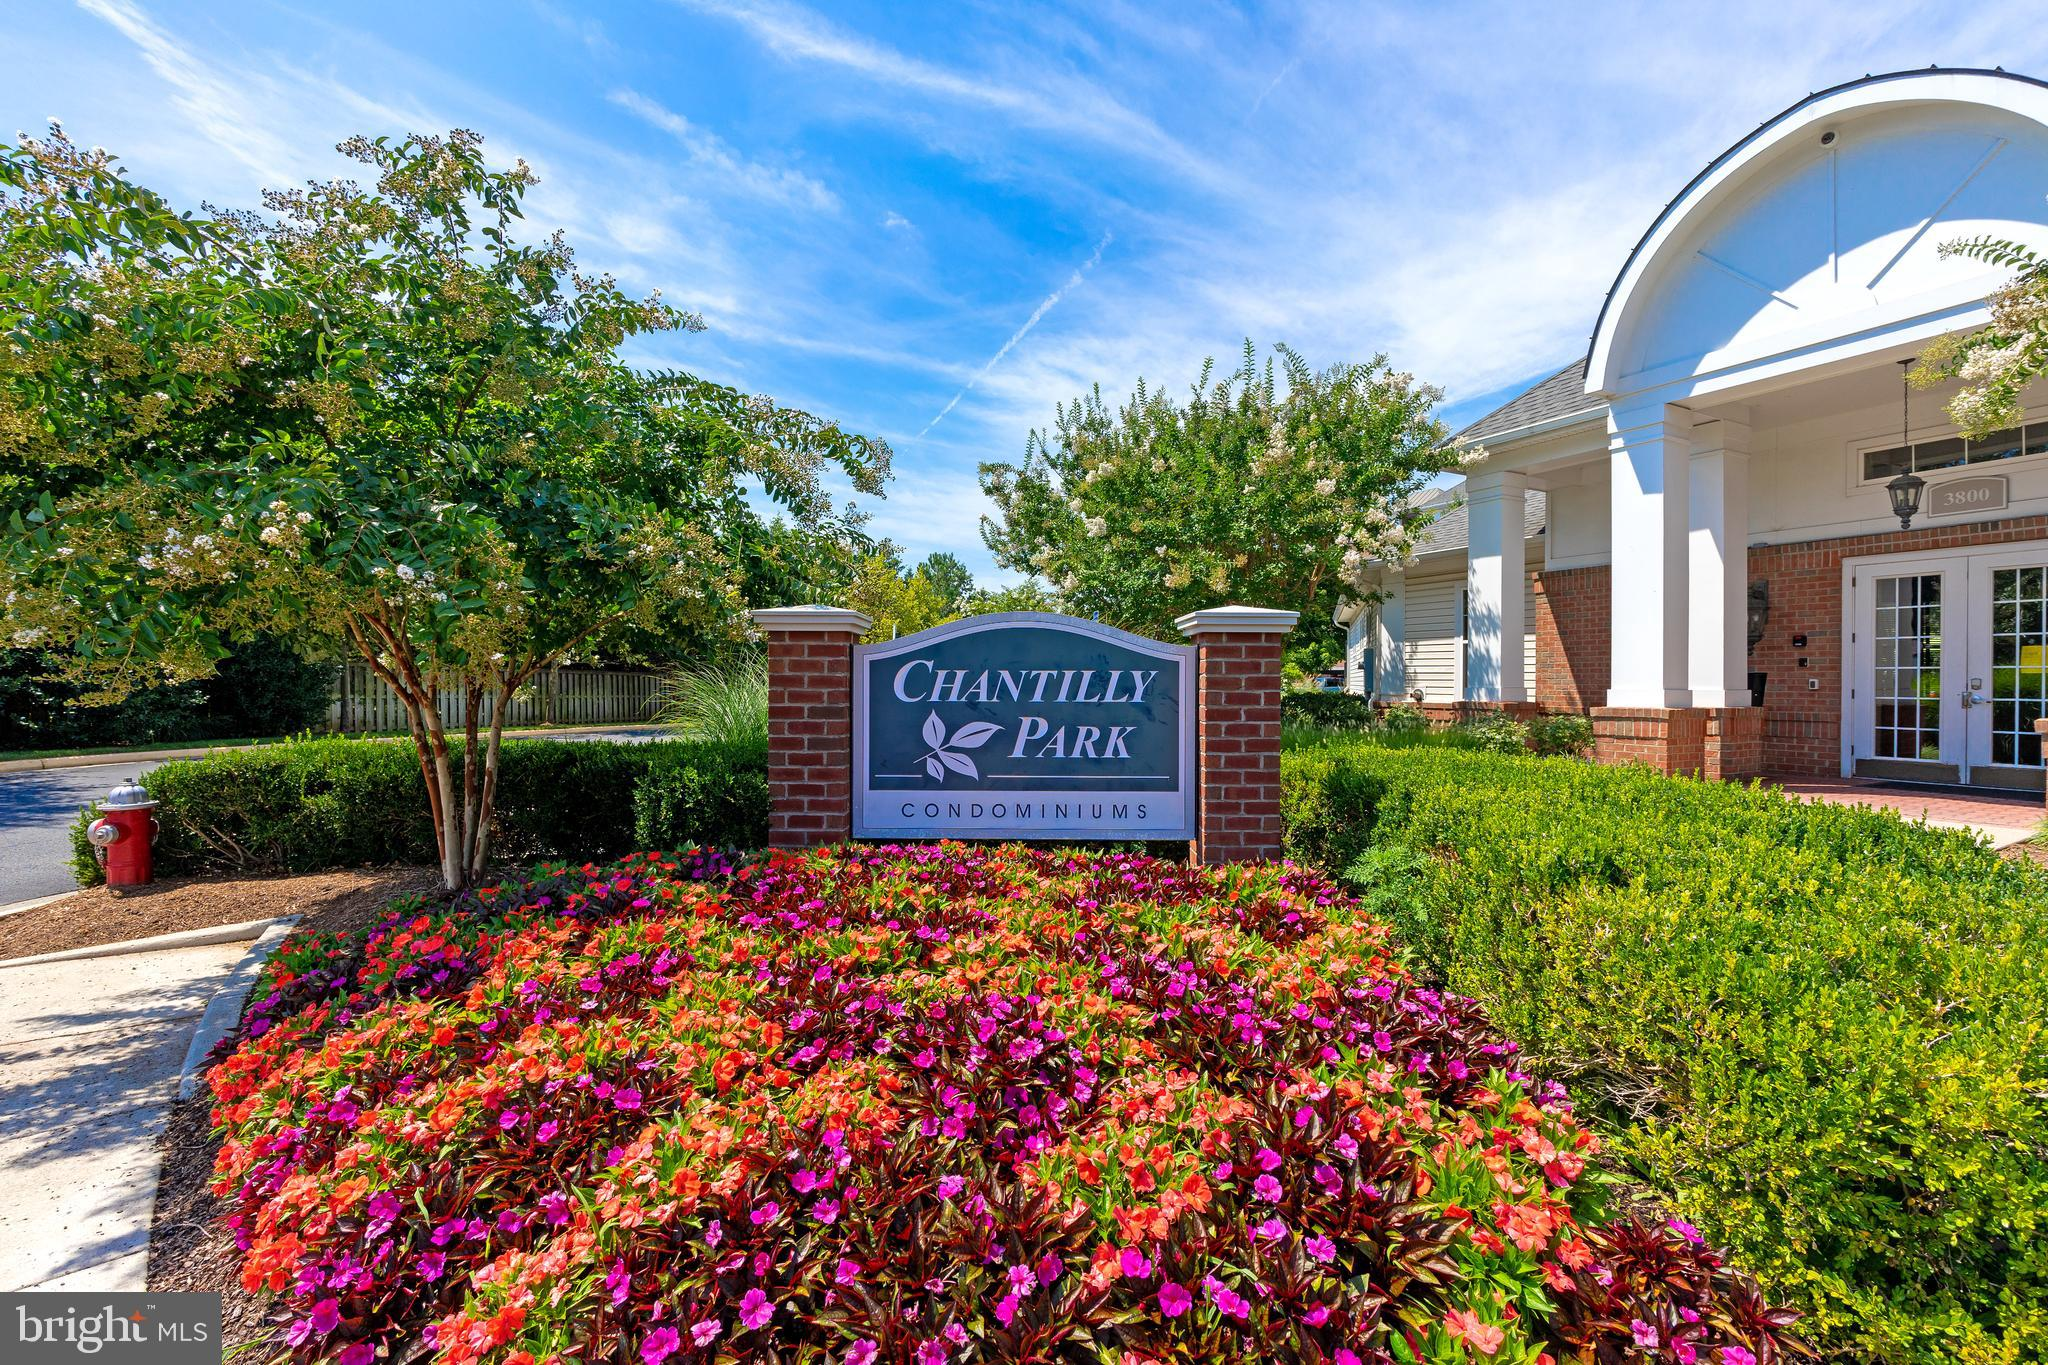 Beautiful, well-kept 2BD/2BA condo at Chantilly Park. Freshly painted & new Carpets. Bright, open fl